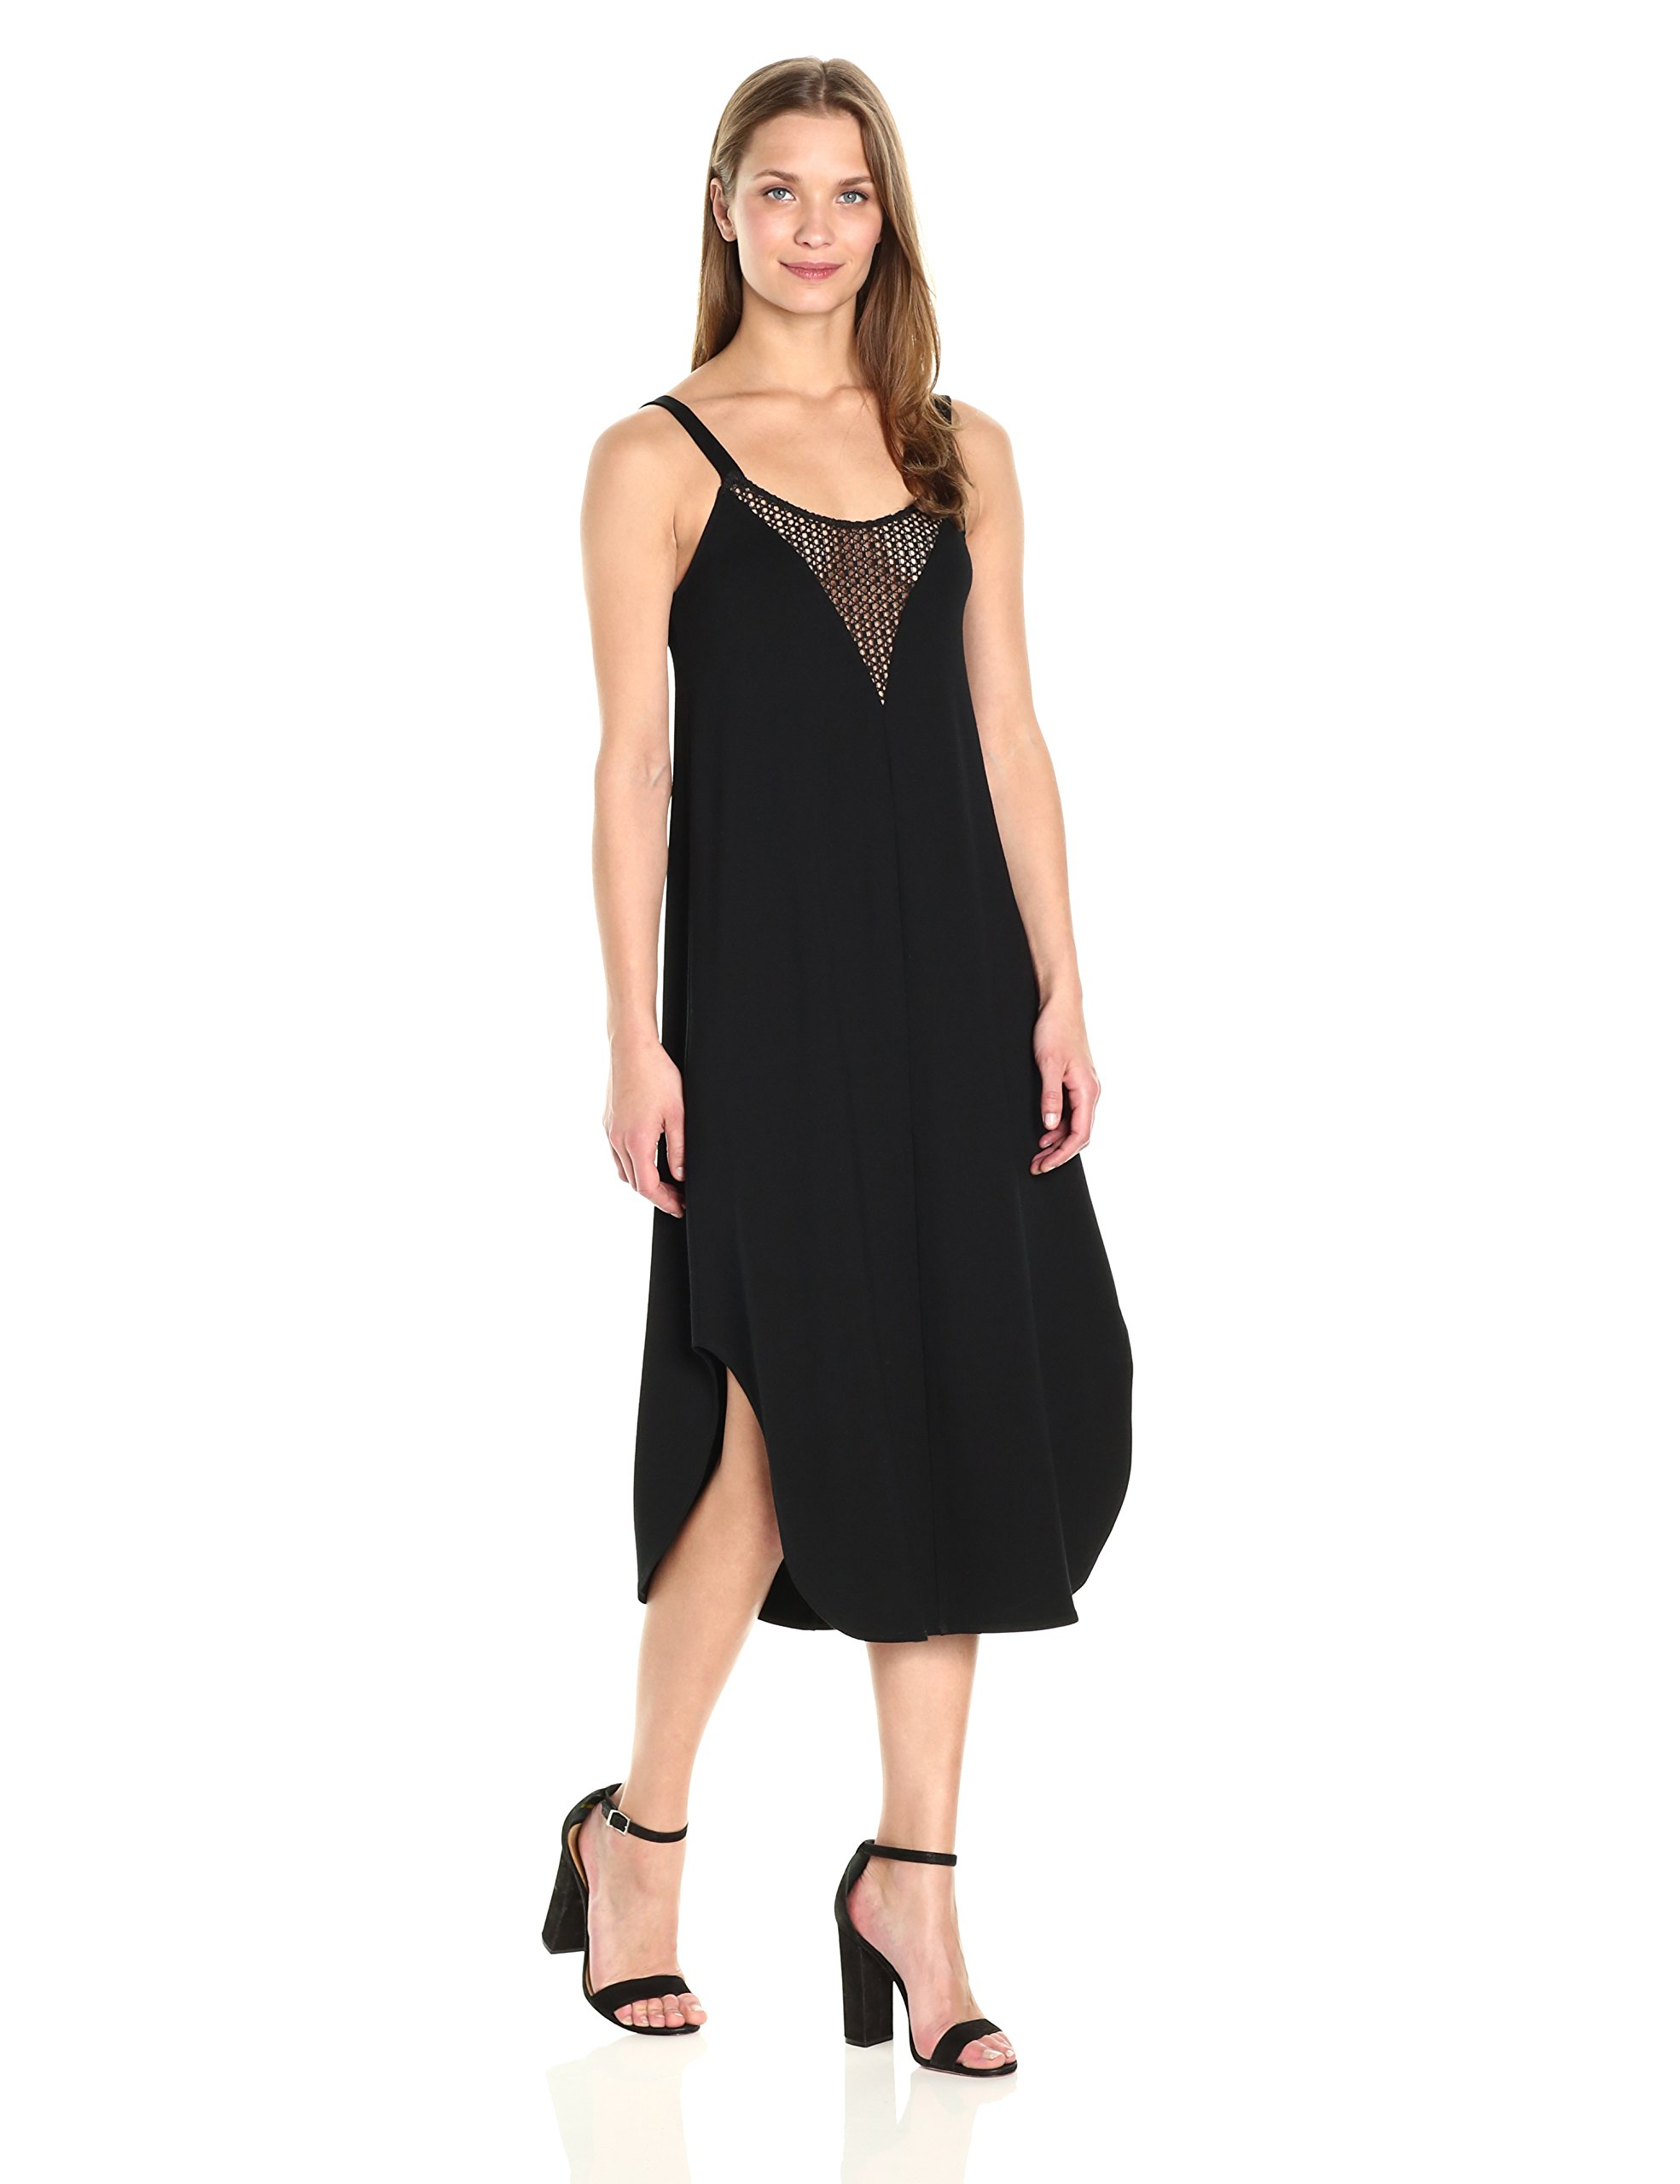 Only Hearts Women's So Fine Crochet Trim Slip Dress, Black, XS